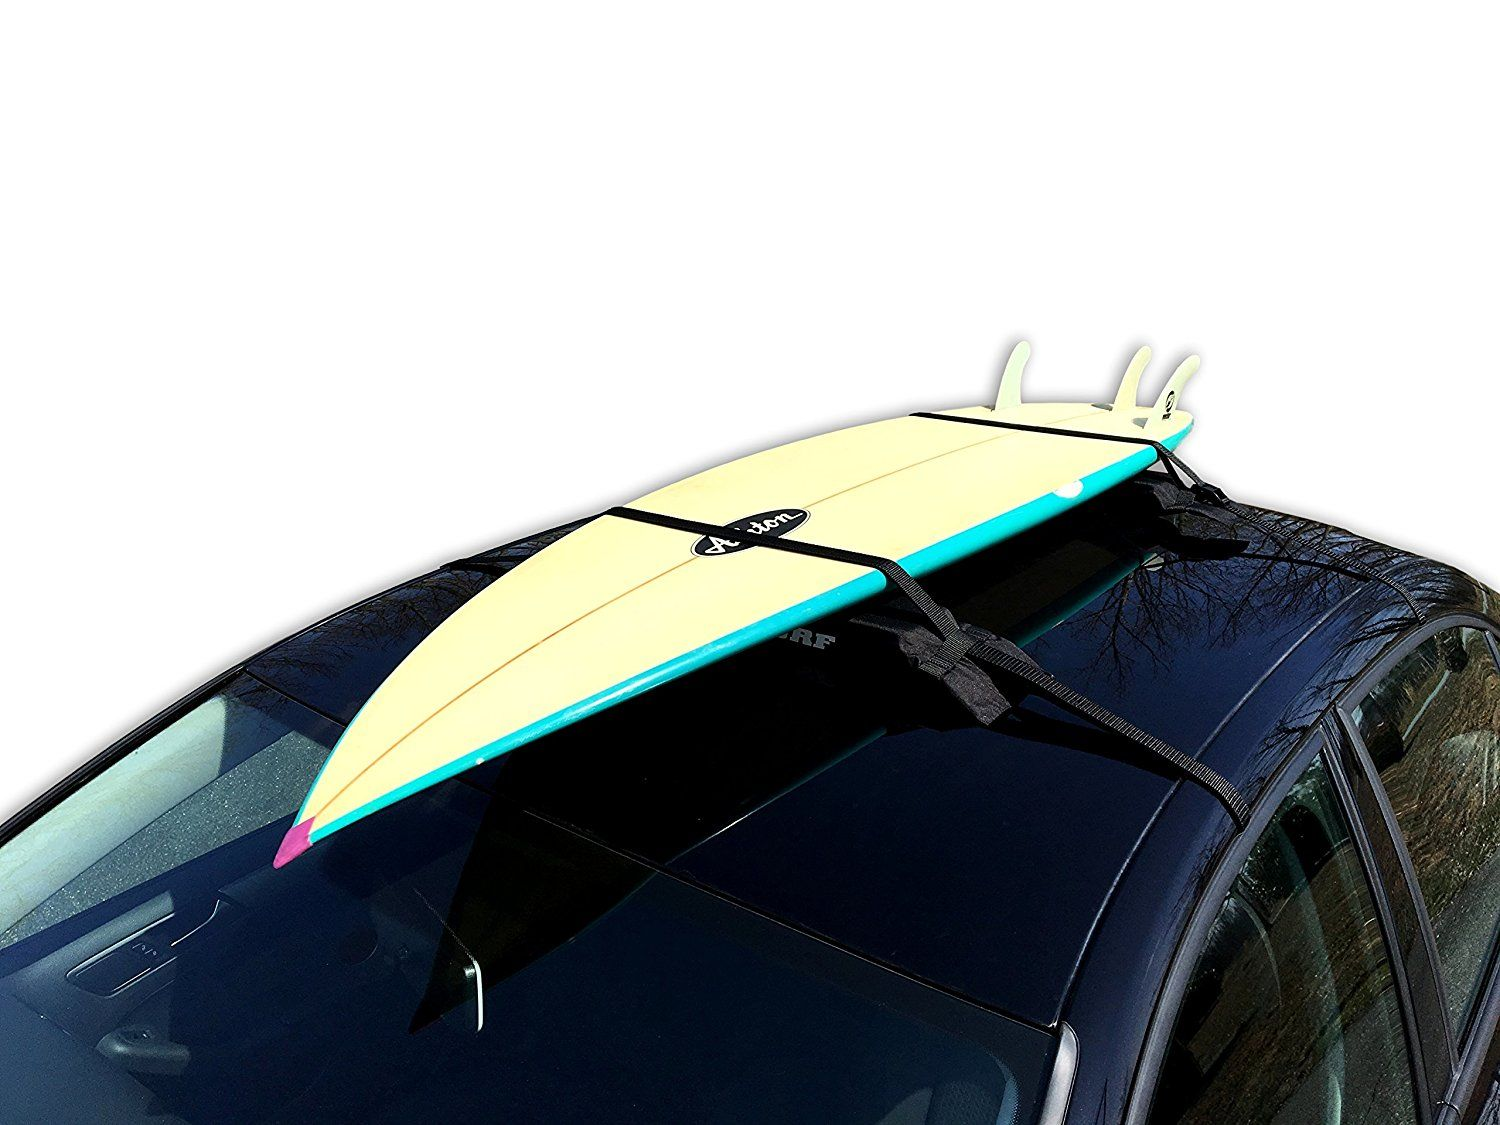 Block Surf Single Wrap Surfboard Rack Flexible Rack Fits Cars With Or Without Gutters The Single Rack Will Carry Up To Two Su Fit Car Surfboard Rack Surfing